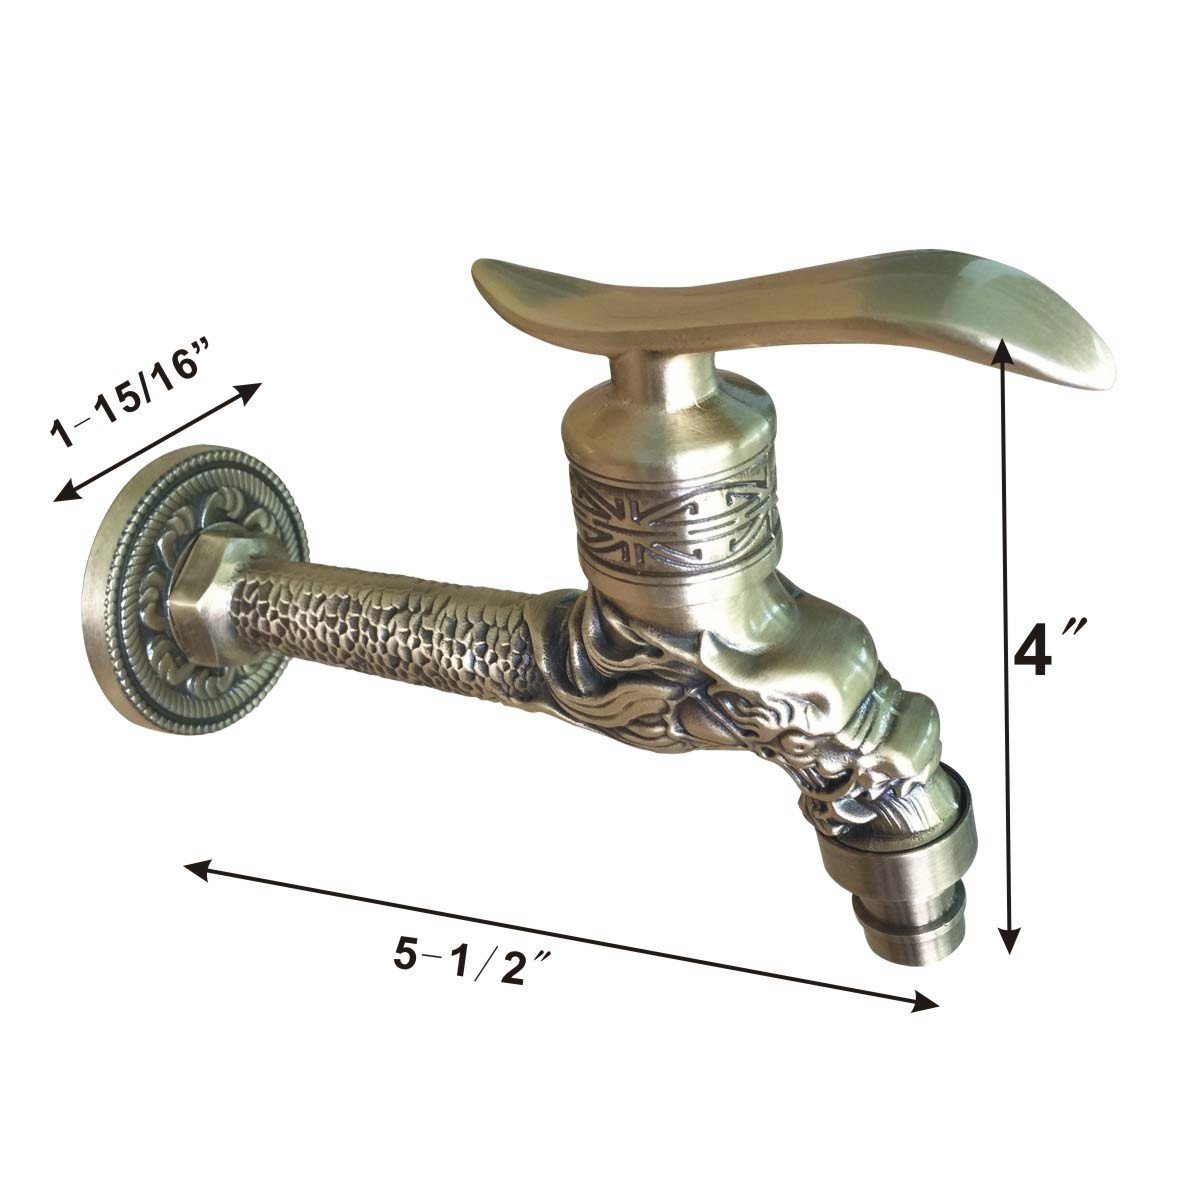 Outdoor Garden Faucet Antique Brass Spigot Spout Tap | Renovators Supply 2